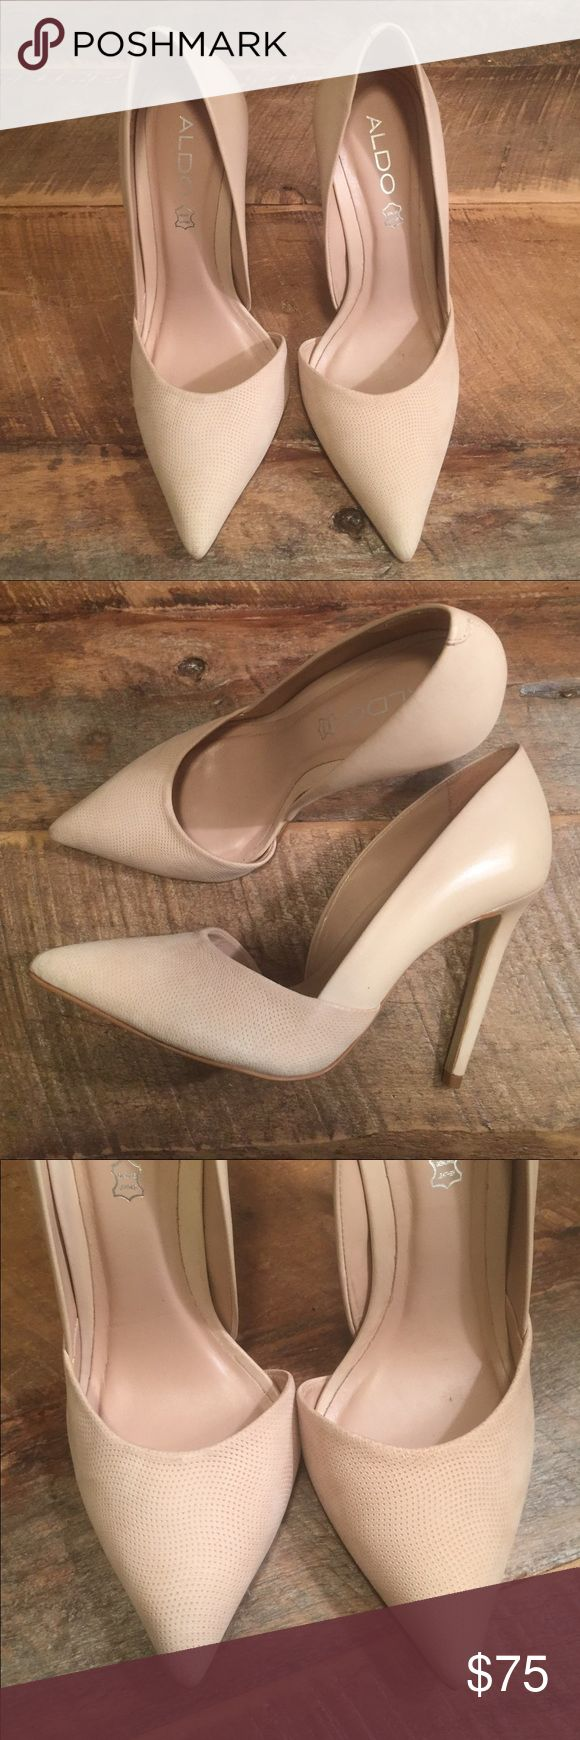 Stunning Aldo Classic Nude Heels Worn ONE TIME for two hours for my bridal shower. Come with box. Love these I just have too many shoes. Great condition with minor signs of wear. Almost like new! gorgeous heels. Aldo Shoes Heels